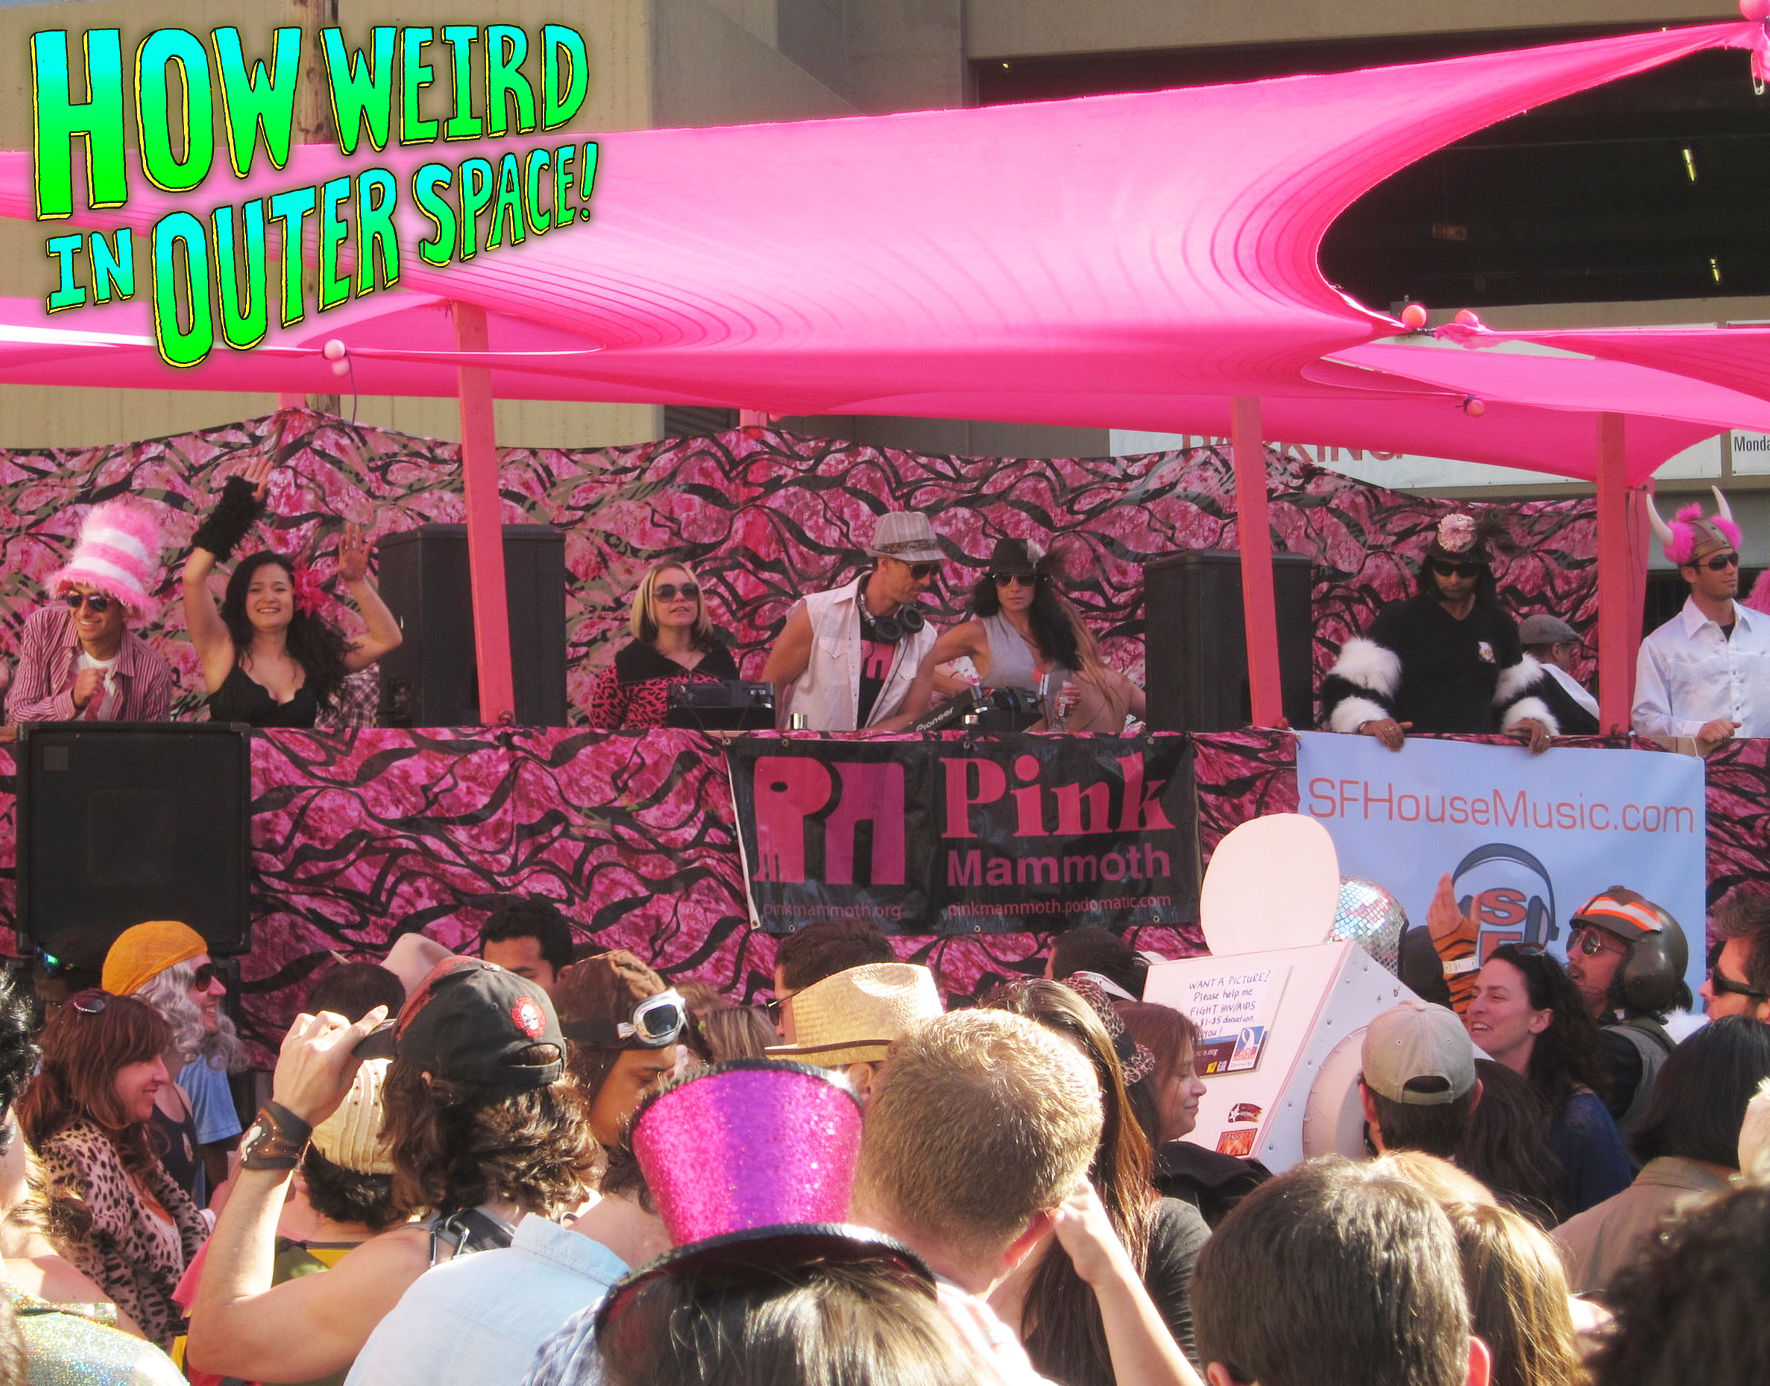 Pink Mammoth and SF House Music stage at How Weird 2012